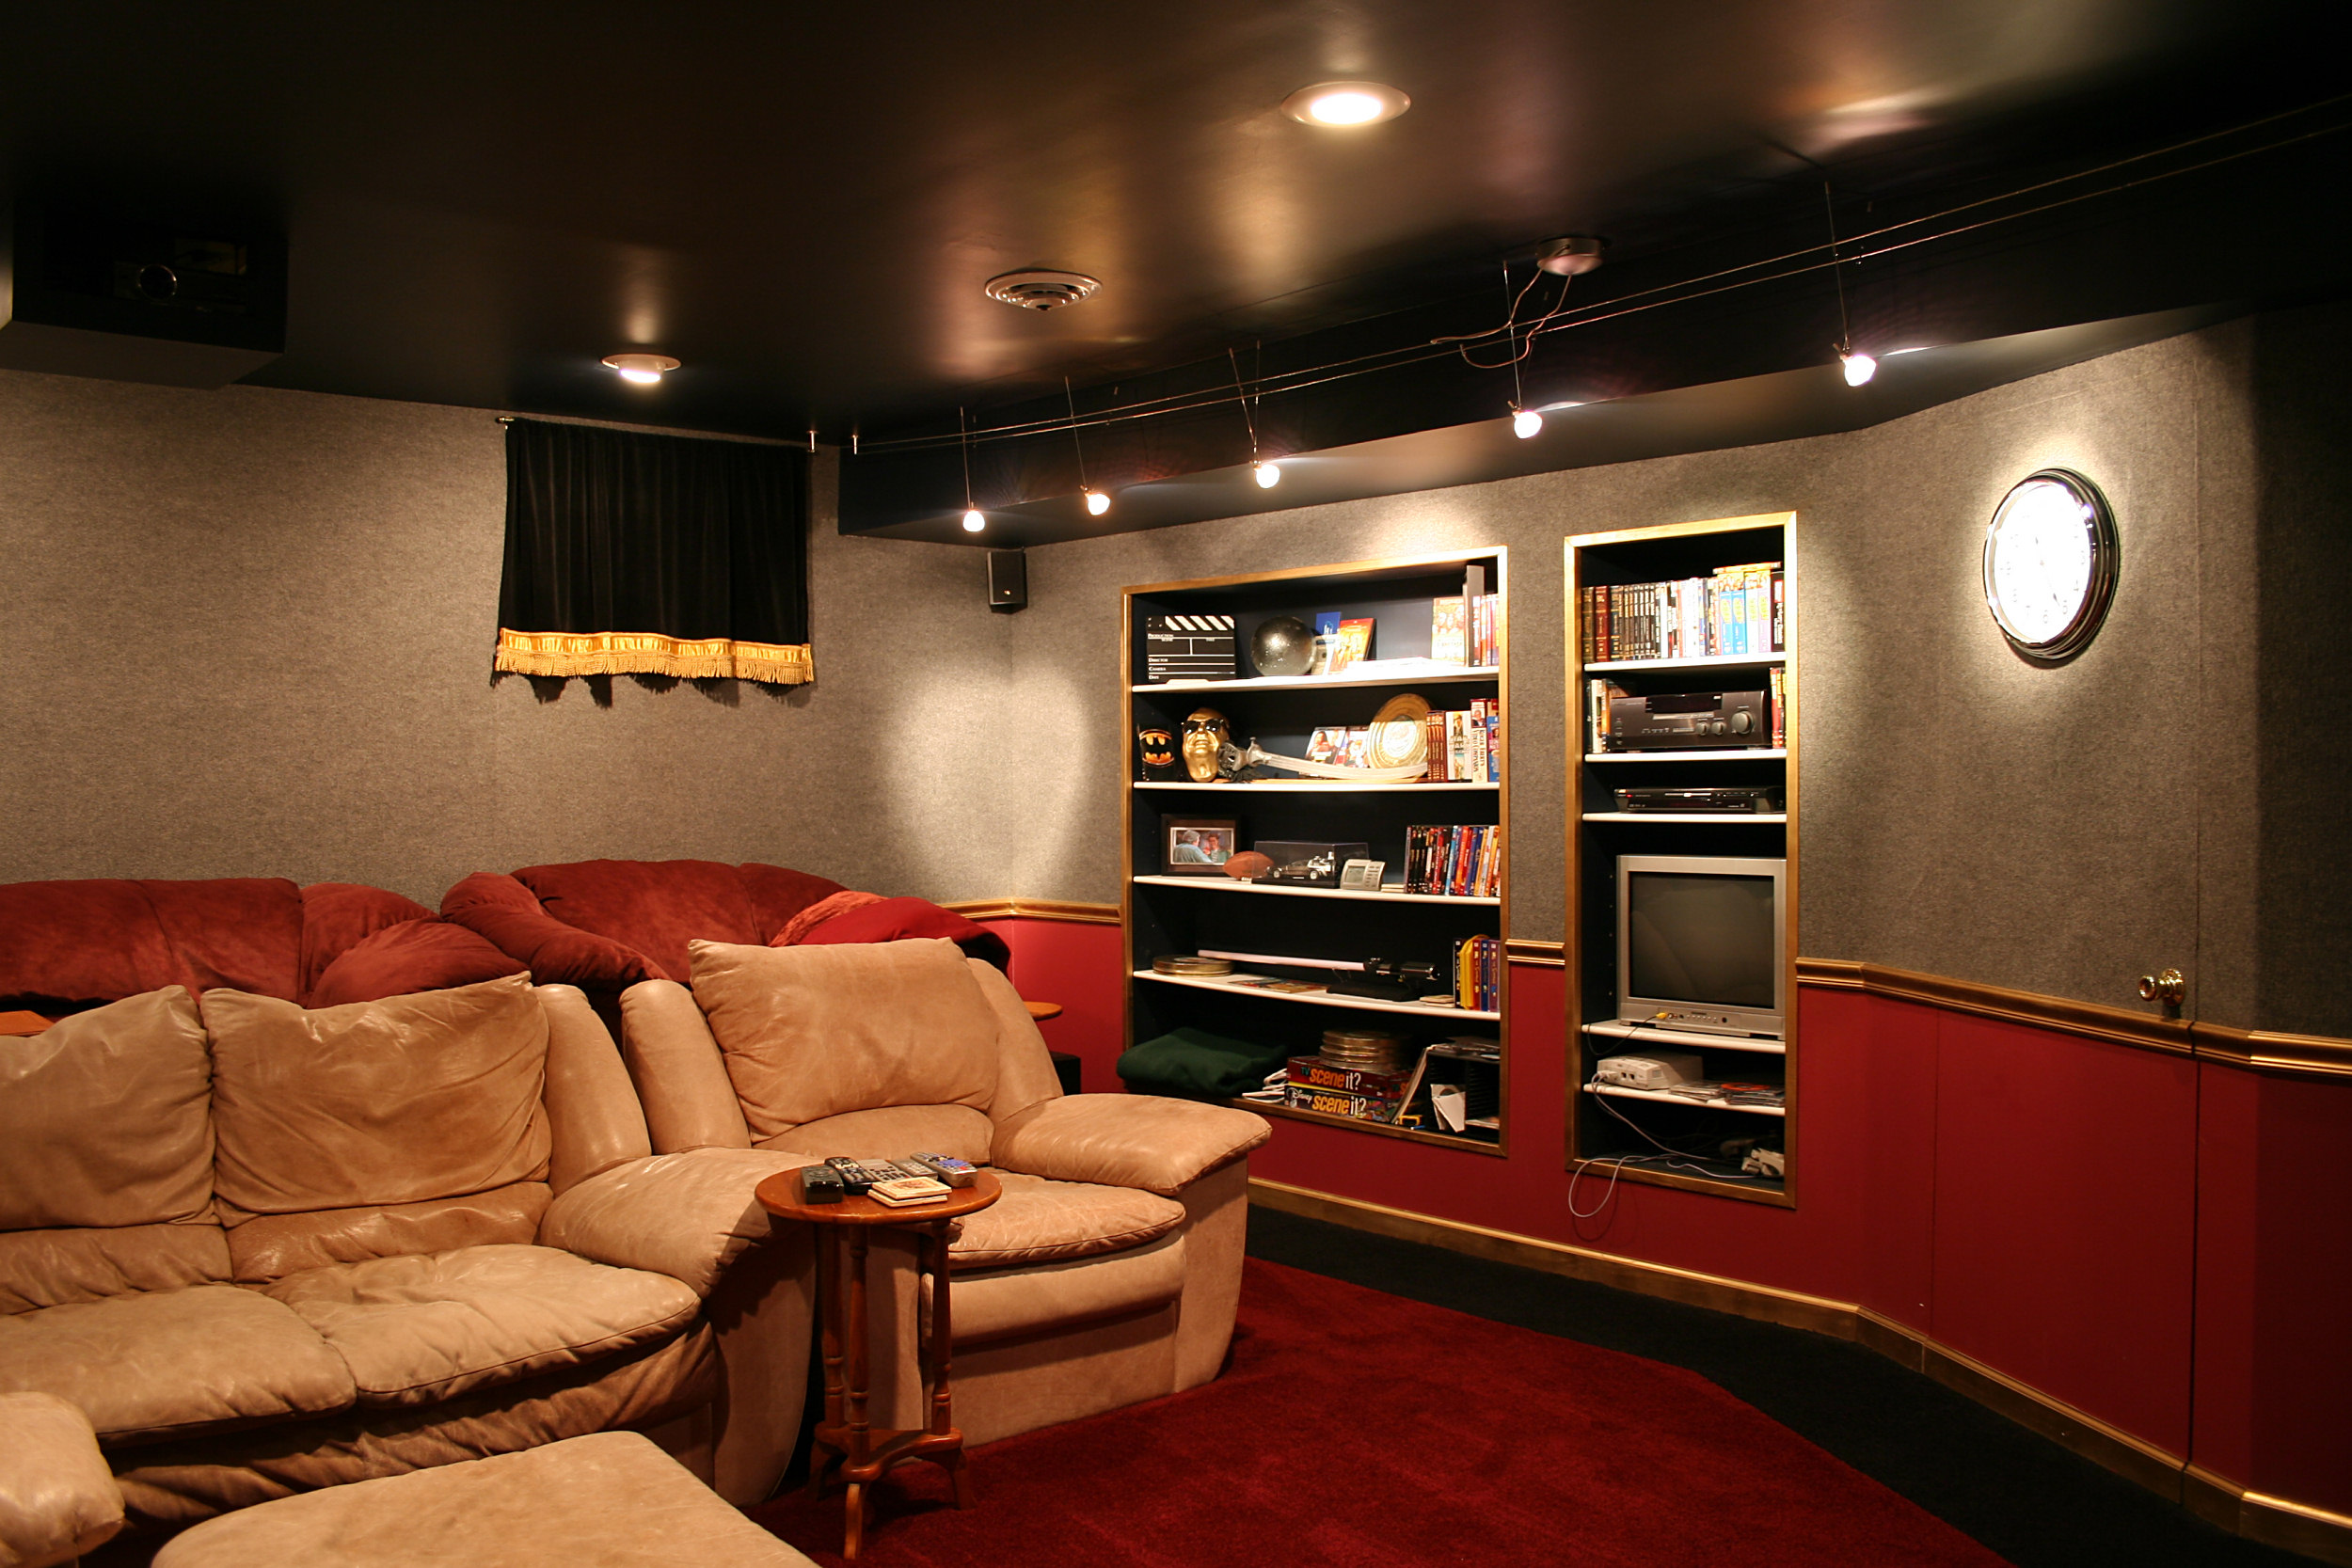 Home decoration pictures home designer - Home theater room design ideas ...